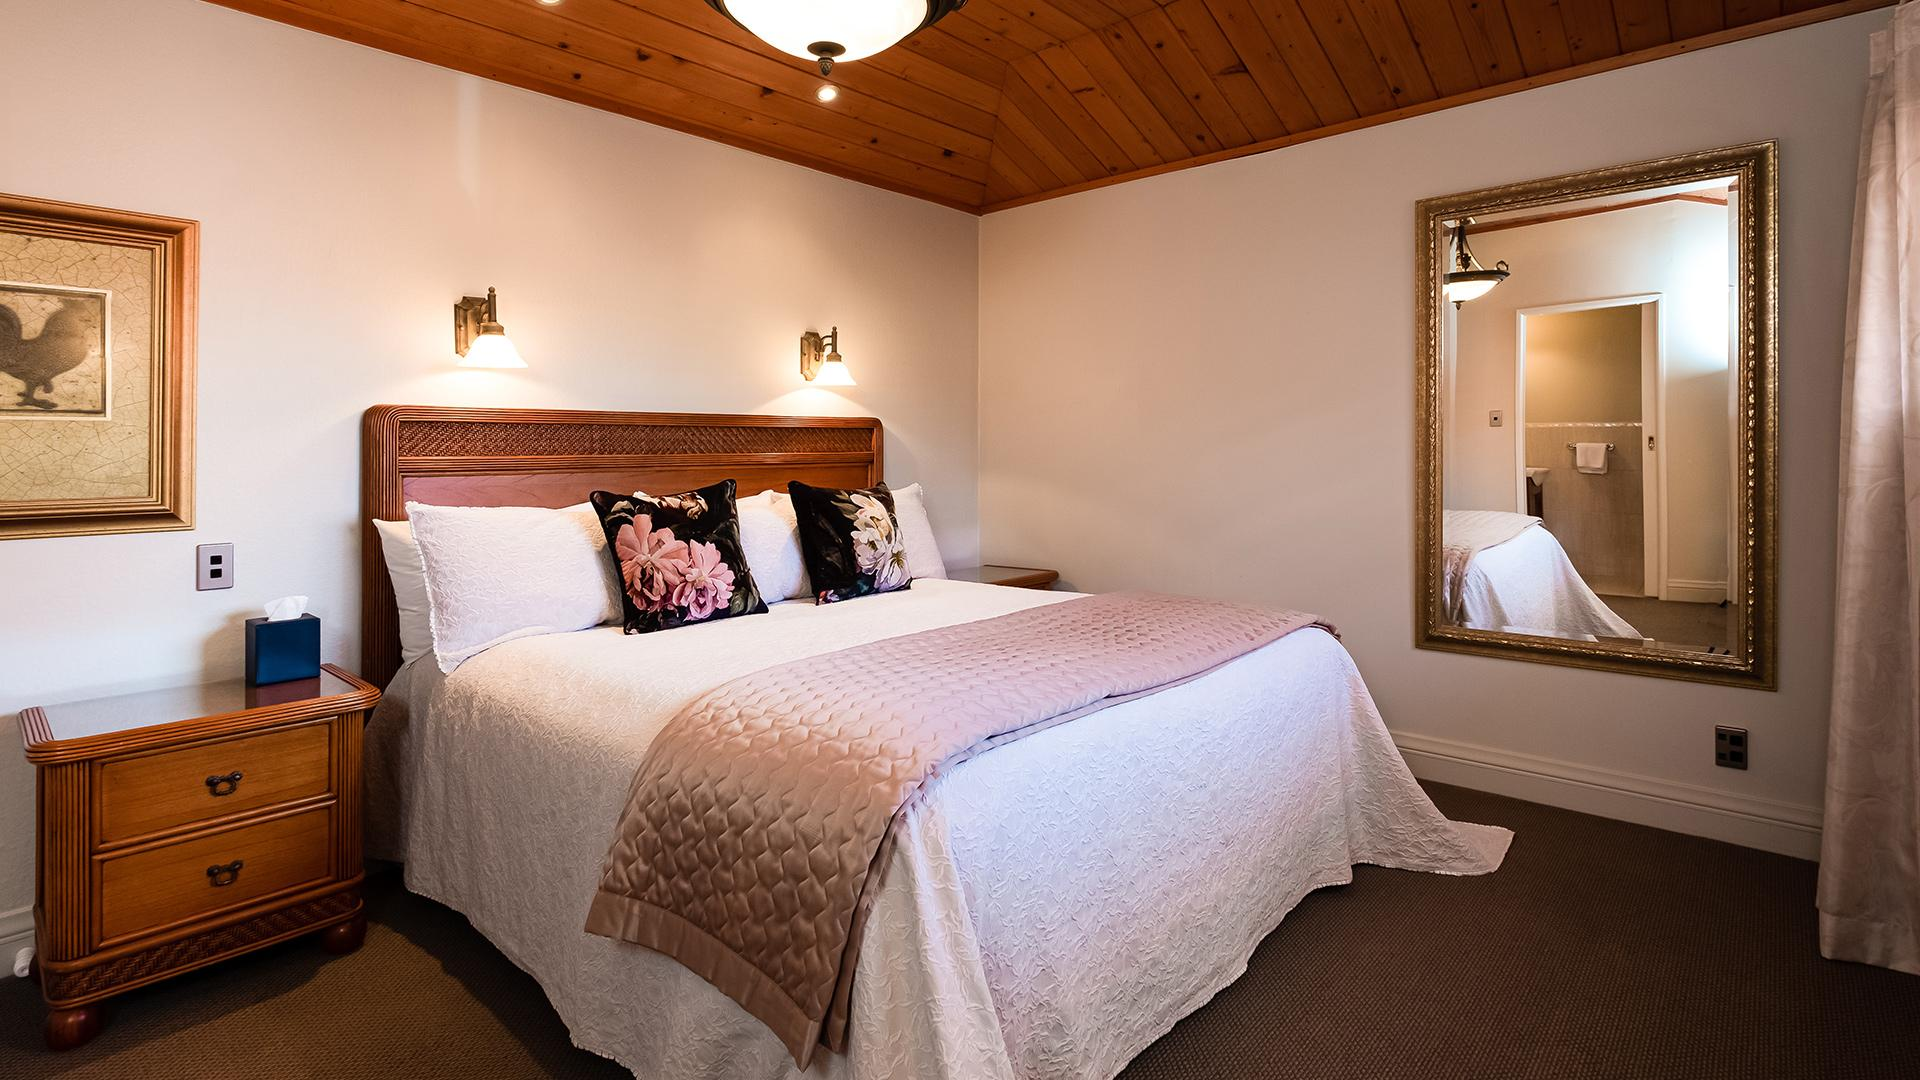 Garden-View Lodge Suite image 1 at Peppers on the Point Lake Rotorua by null, Bay of Plenty, New Zealand